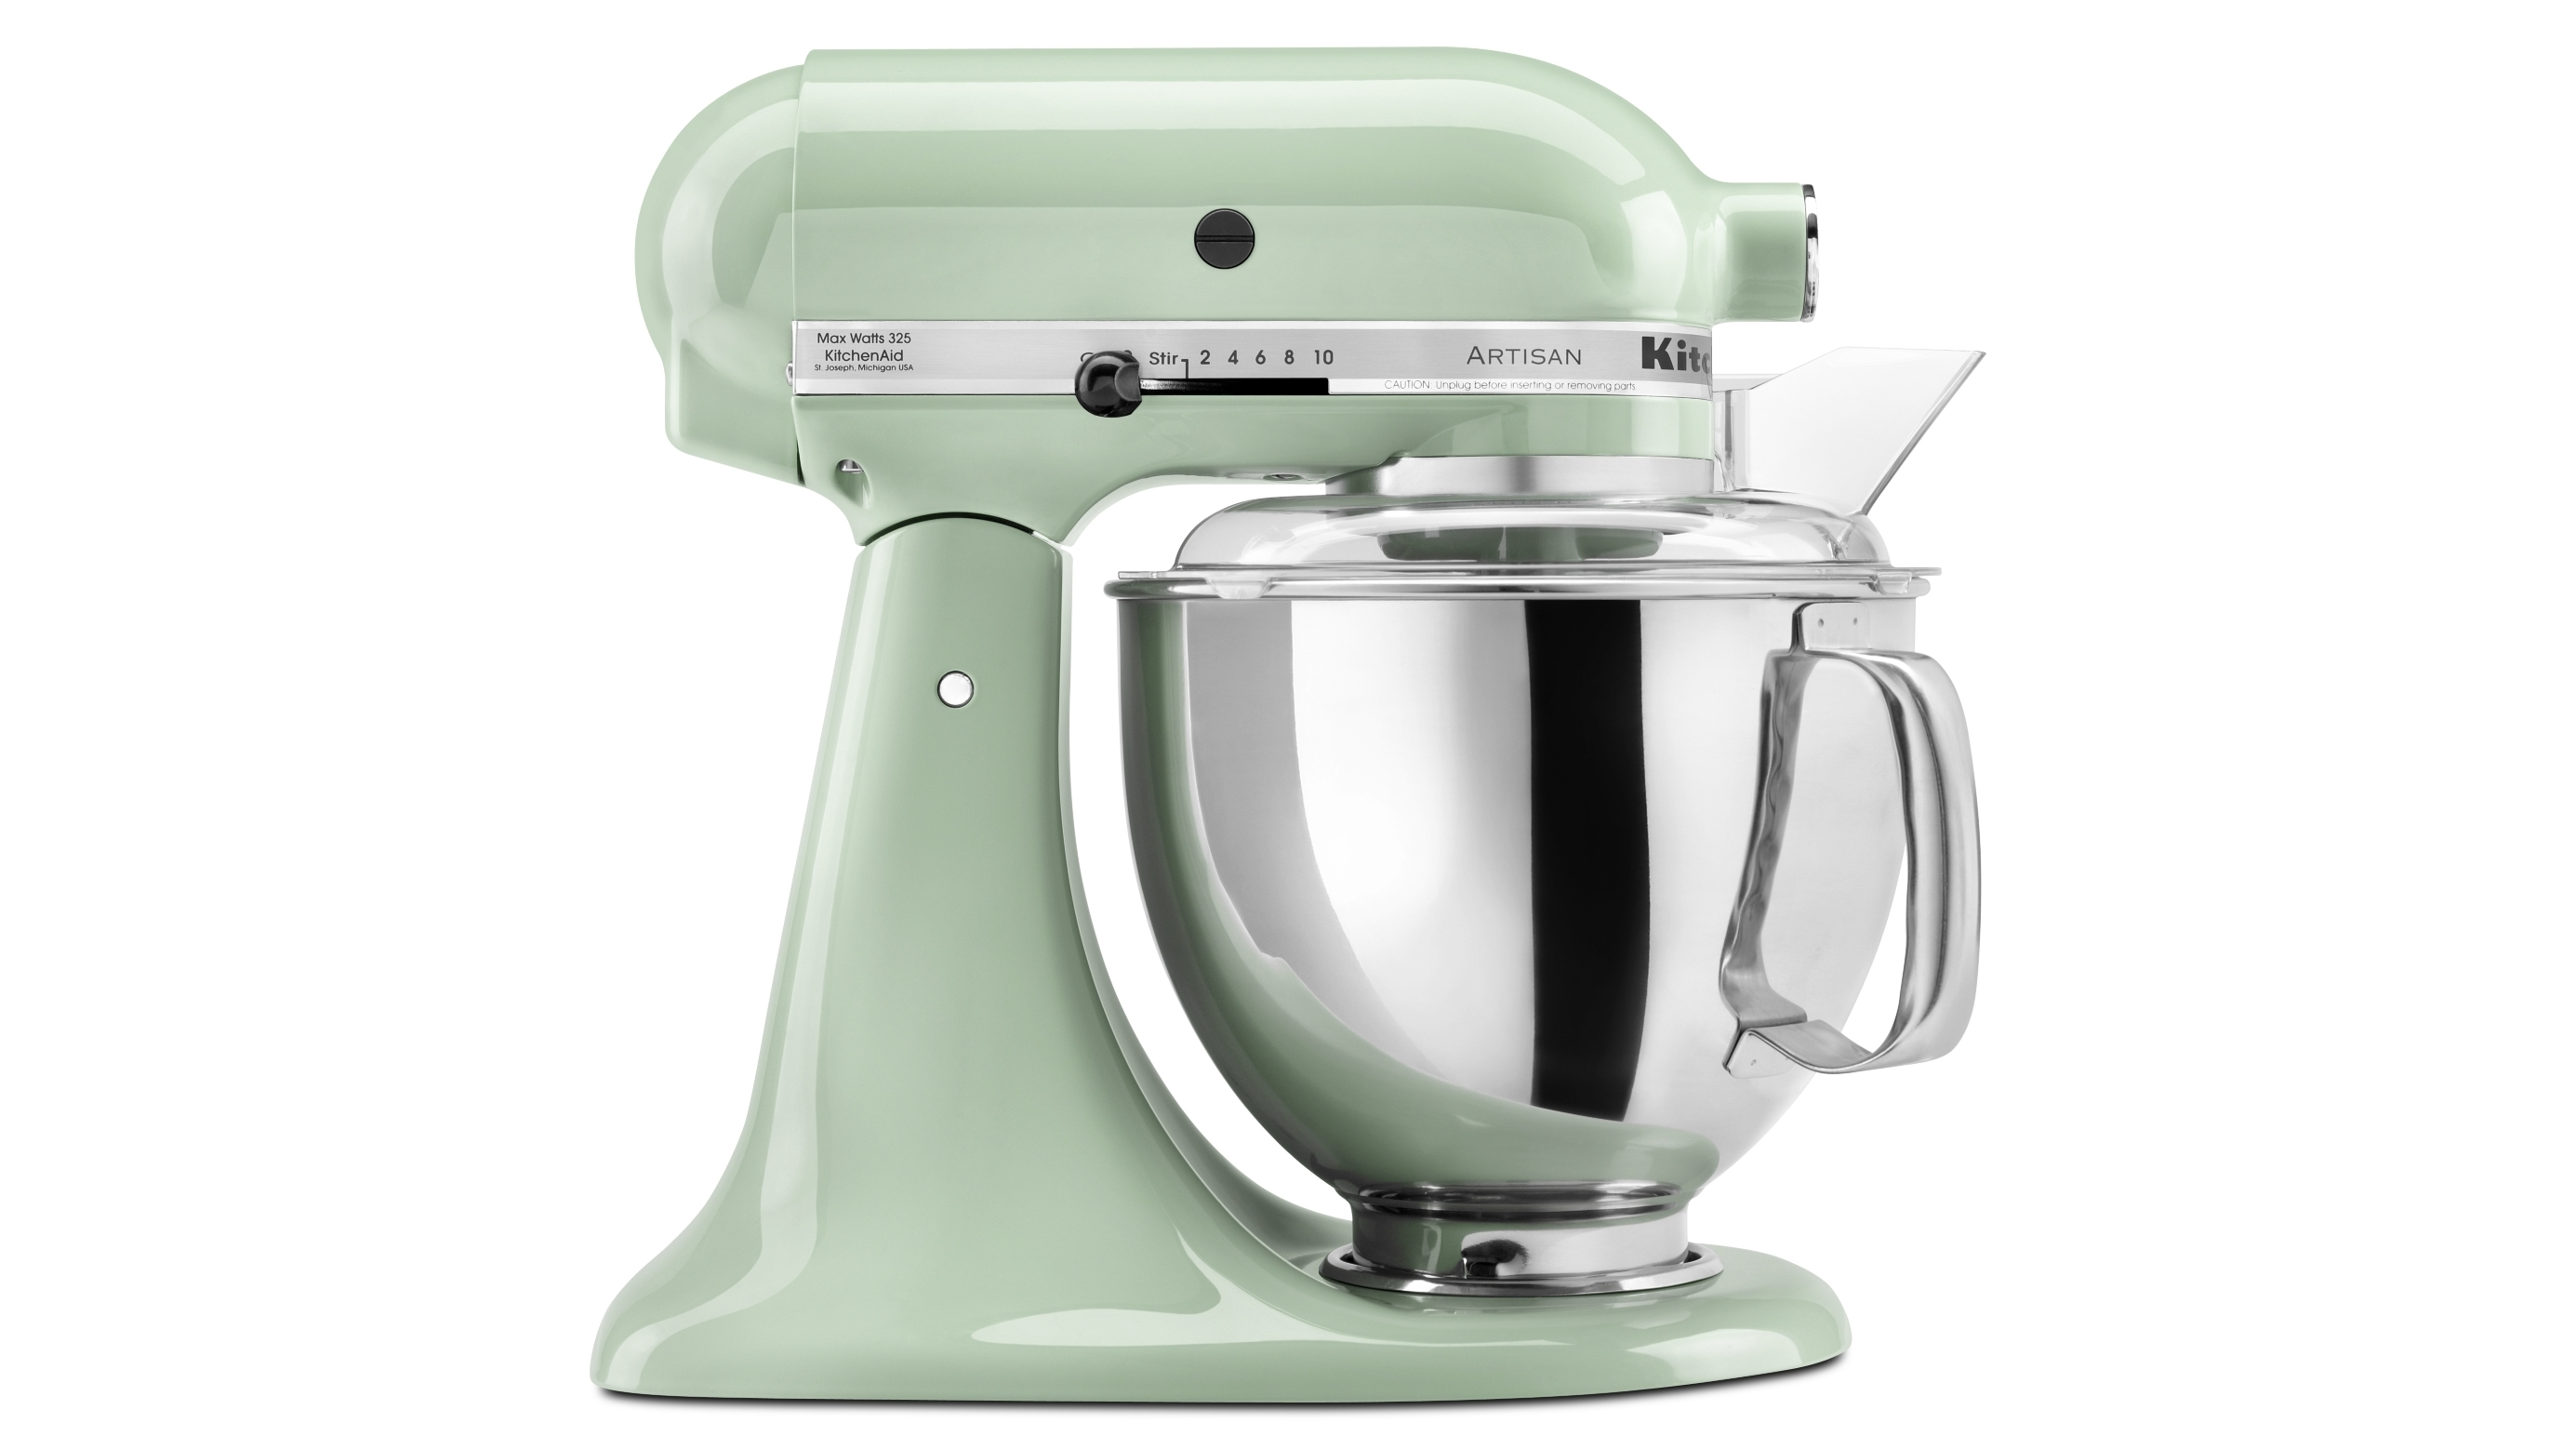 Kitchenaid Artisan Mixer User Manual